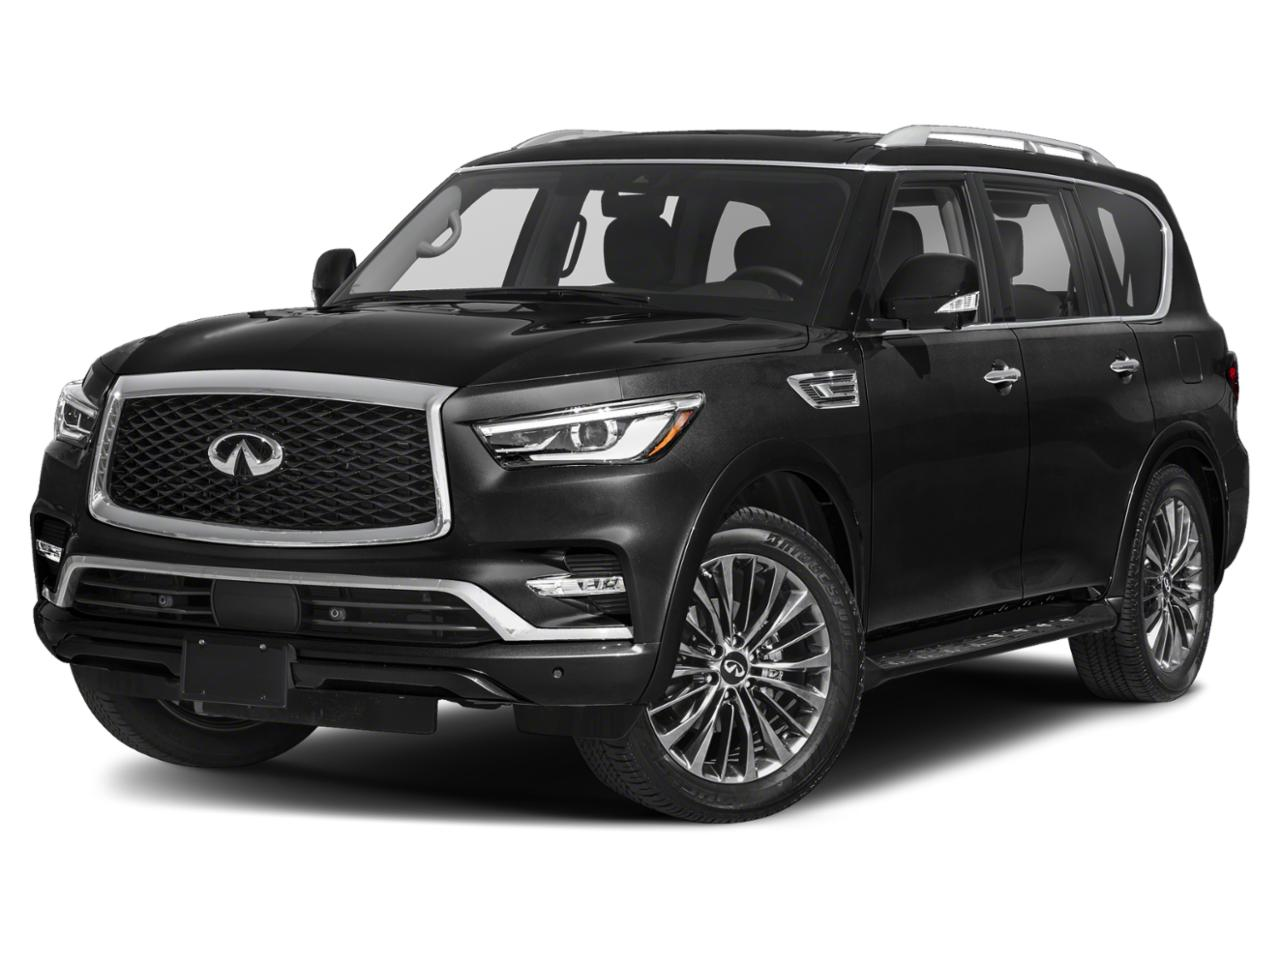 2021 INFINITI QX80 Vehicle Photo in Houston, TX 77090